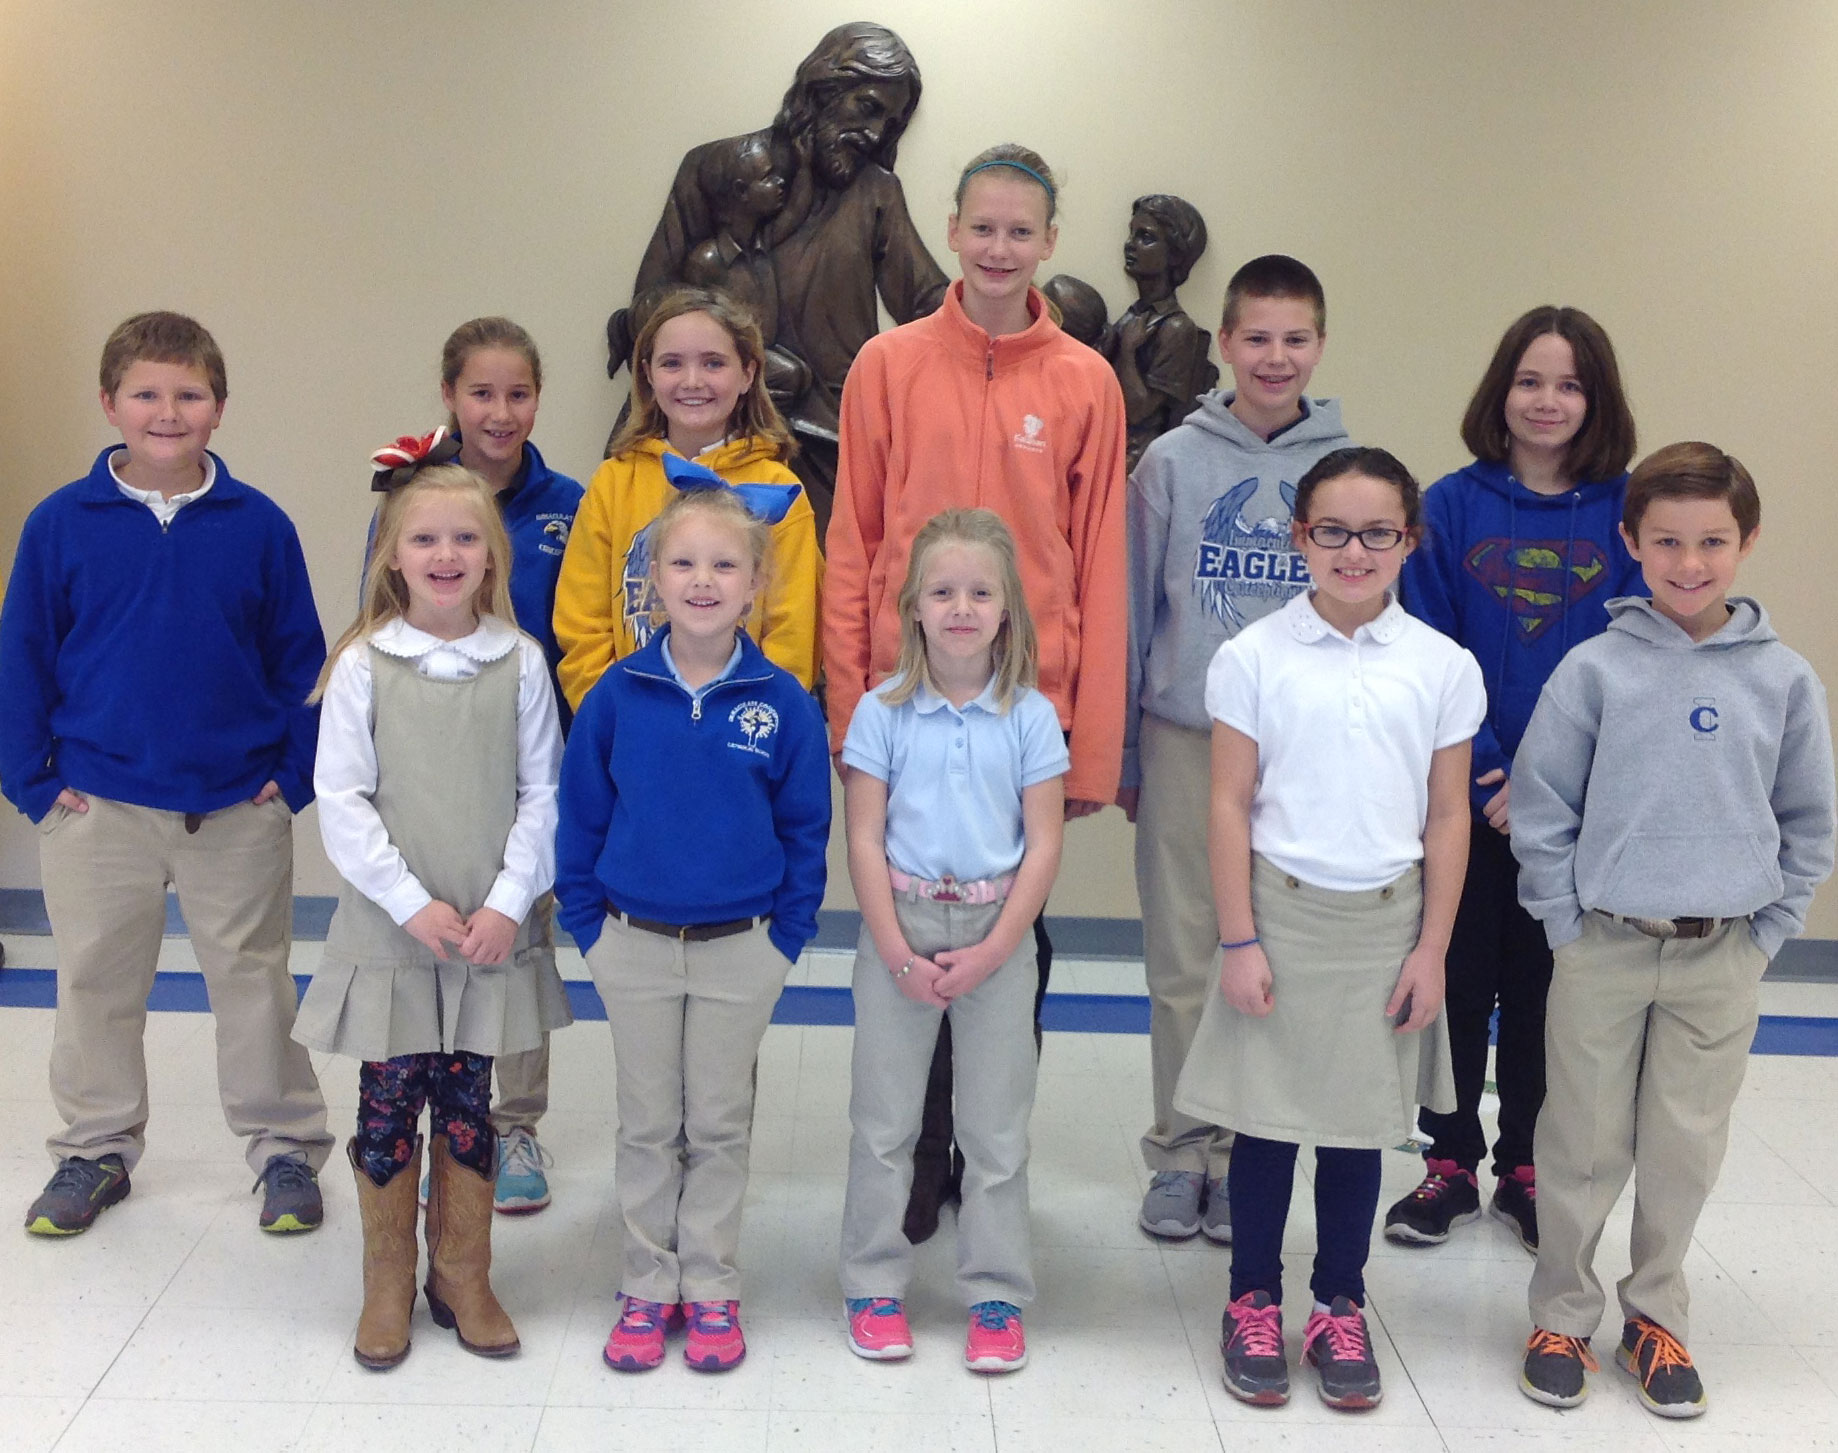 OCTOBER STUDENTS OF THE MONTH­—October Students of the Month at Immaculate Conception School in Jackson are: (front row l to r) Kinley Duenne, Carleigh Glastetter, Emily Huff, Macy Bommarito, Jackson Jones, (back row) Sam Criddle, Natalie Essner, Eve Jones, Emma Higgins, Robbie Criddle, and Elizabeth Raines. Students who display good Christian conduct, attitude, and classroom effort may be nominated by their teachers for this acknowledgement. (Submitted photo)